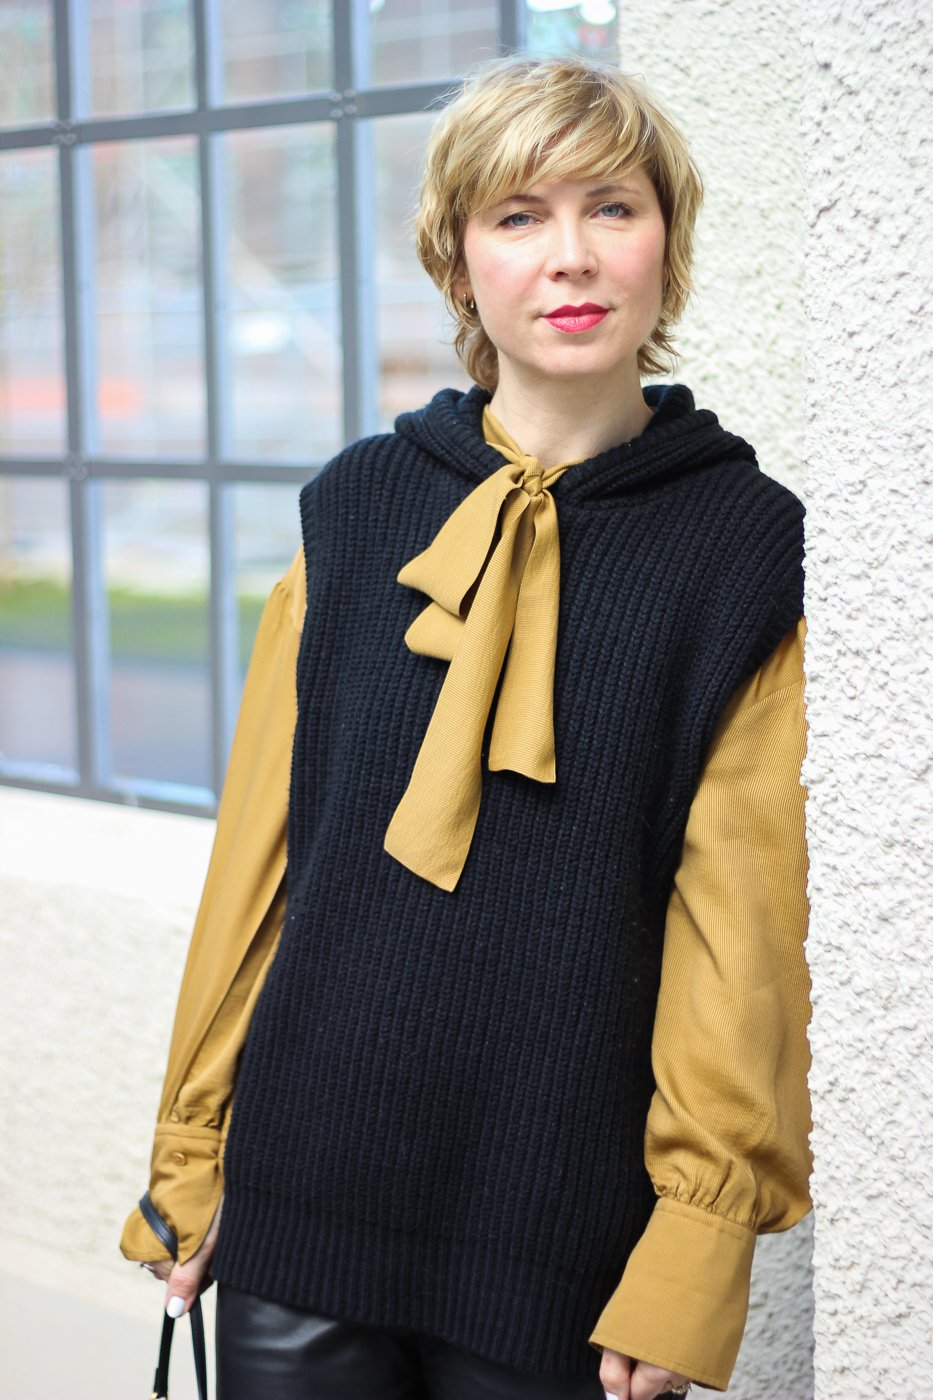 conny doll lifestyle: Schluppenbluse und Pullunder, Winterfrühlings-Outfit